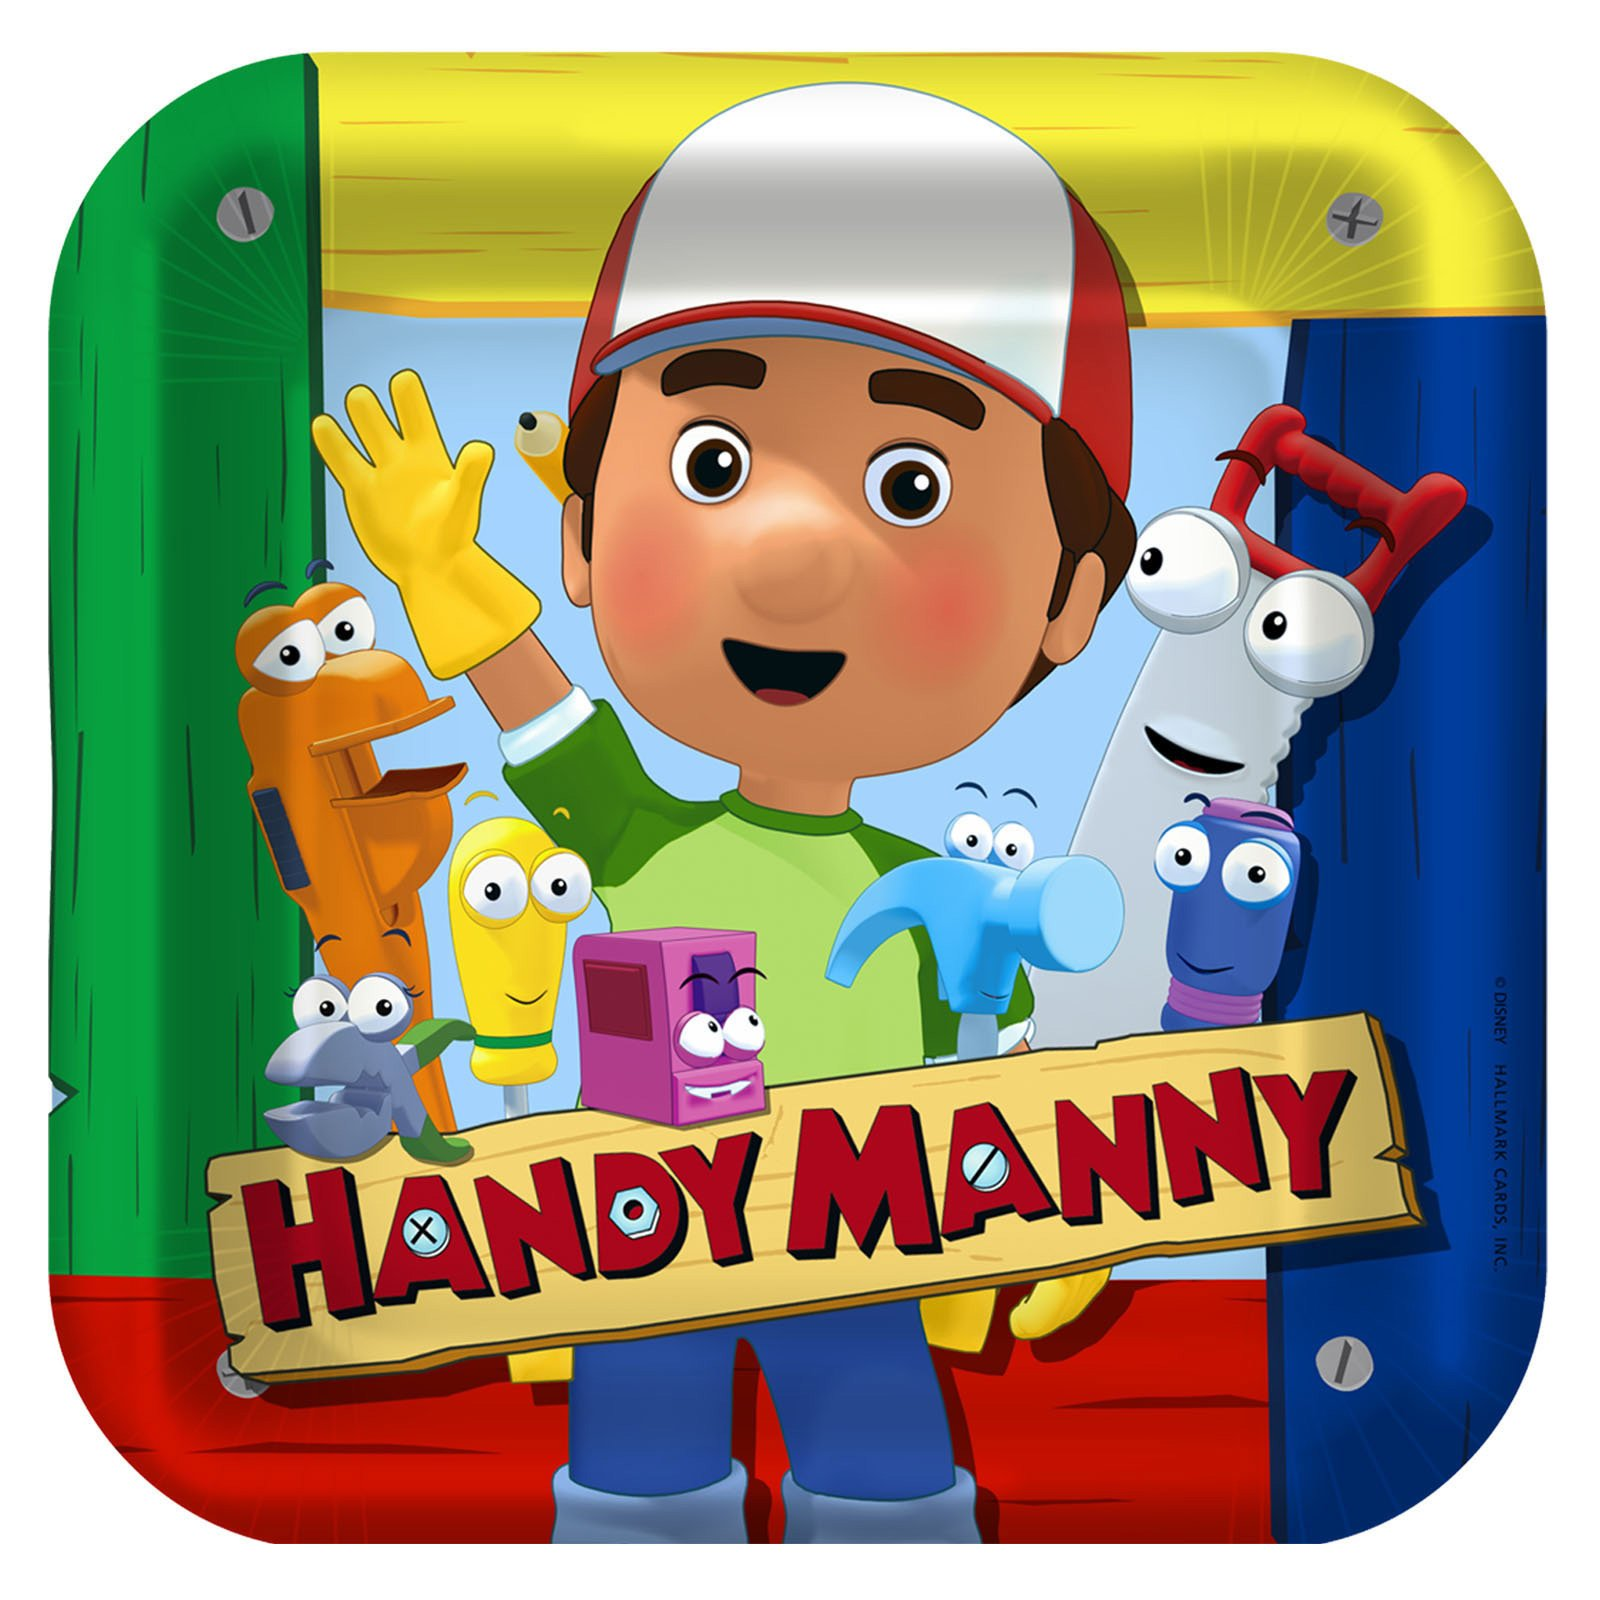 To briefly introduce Handy Manny show, Handy Manny is an animated preschool ...